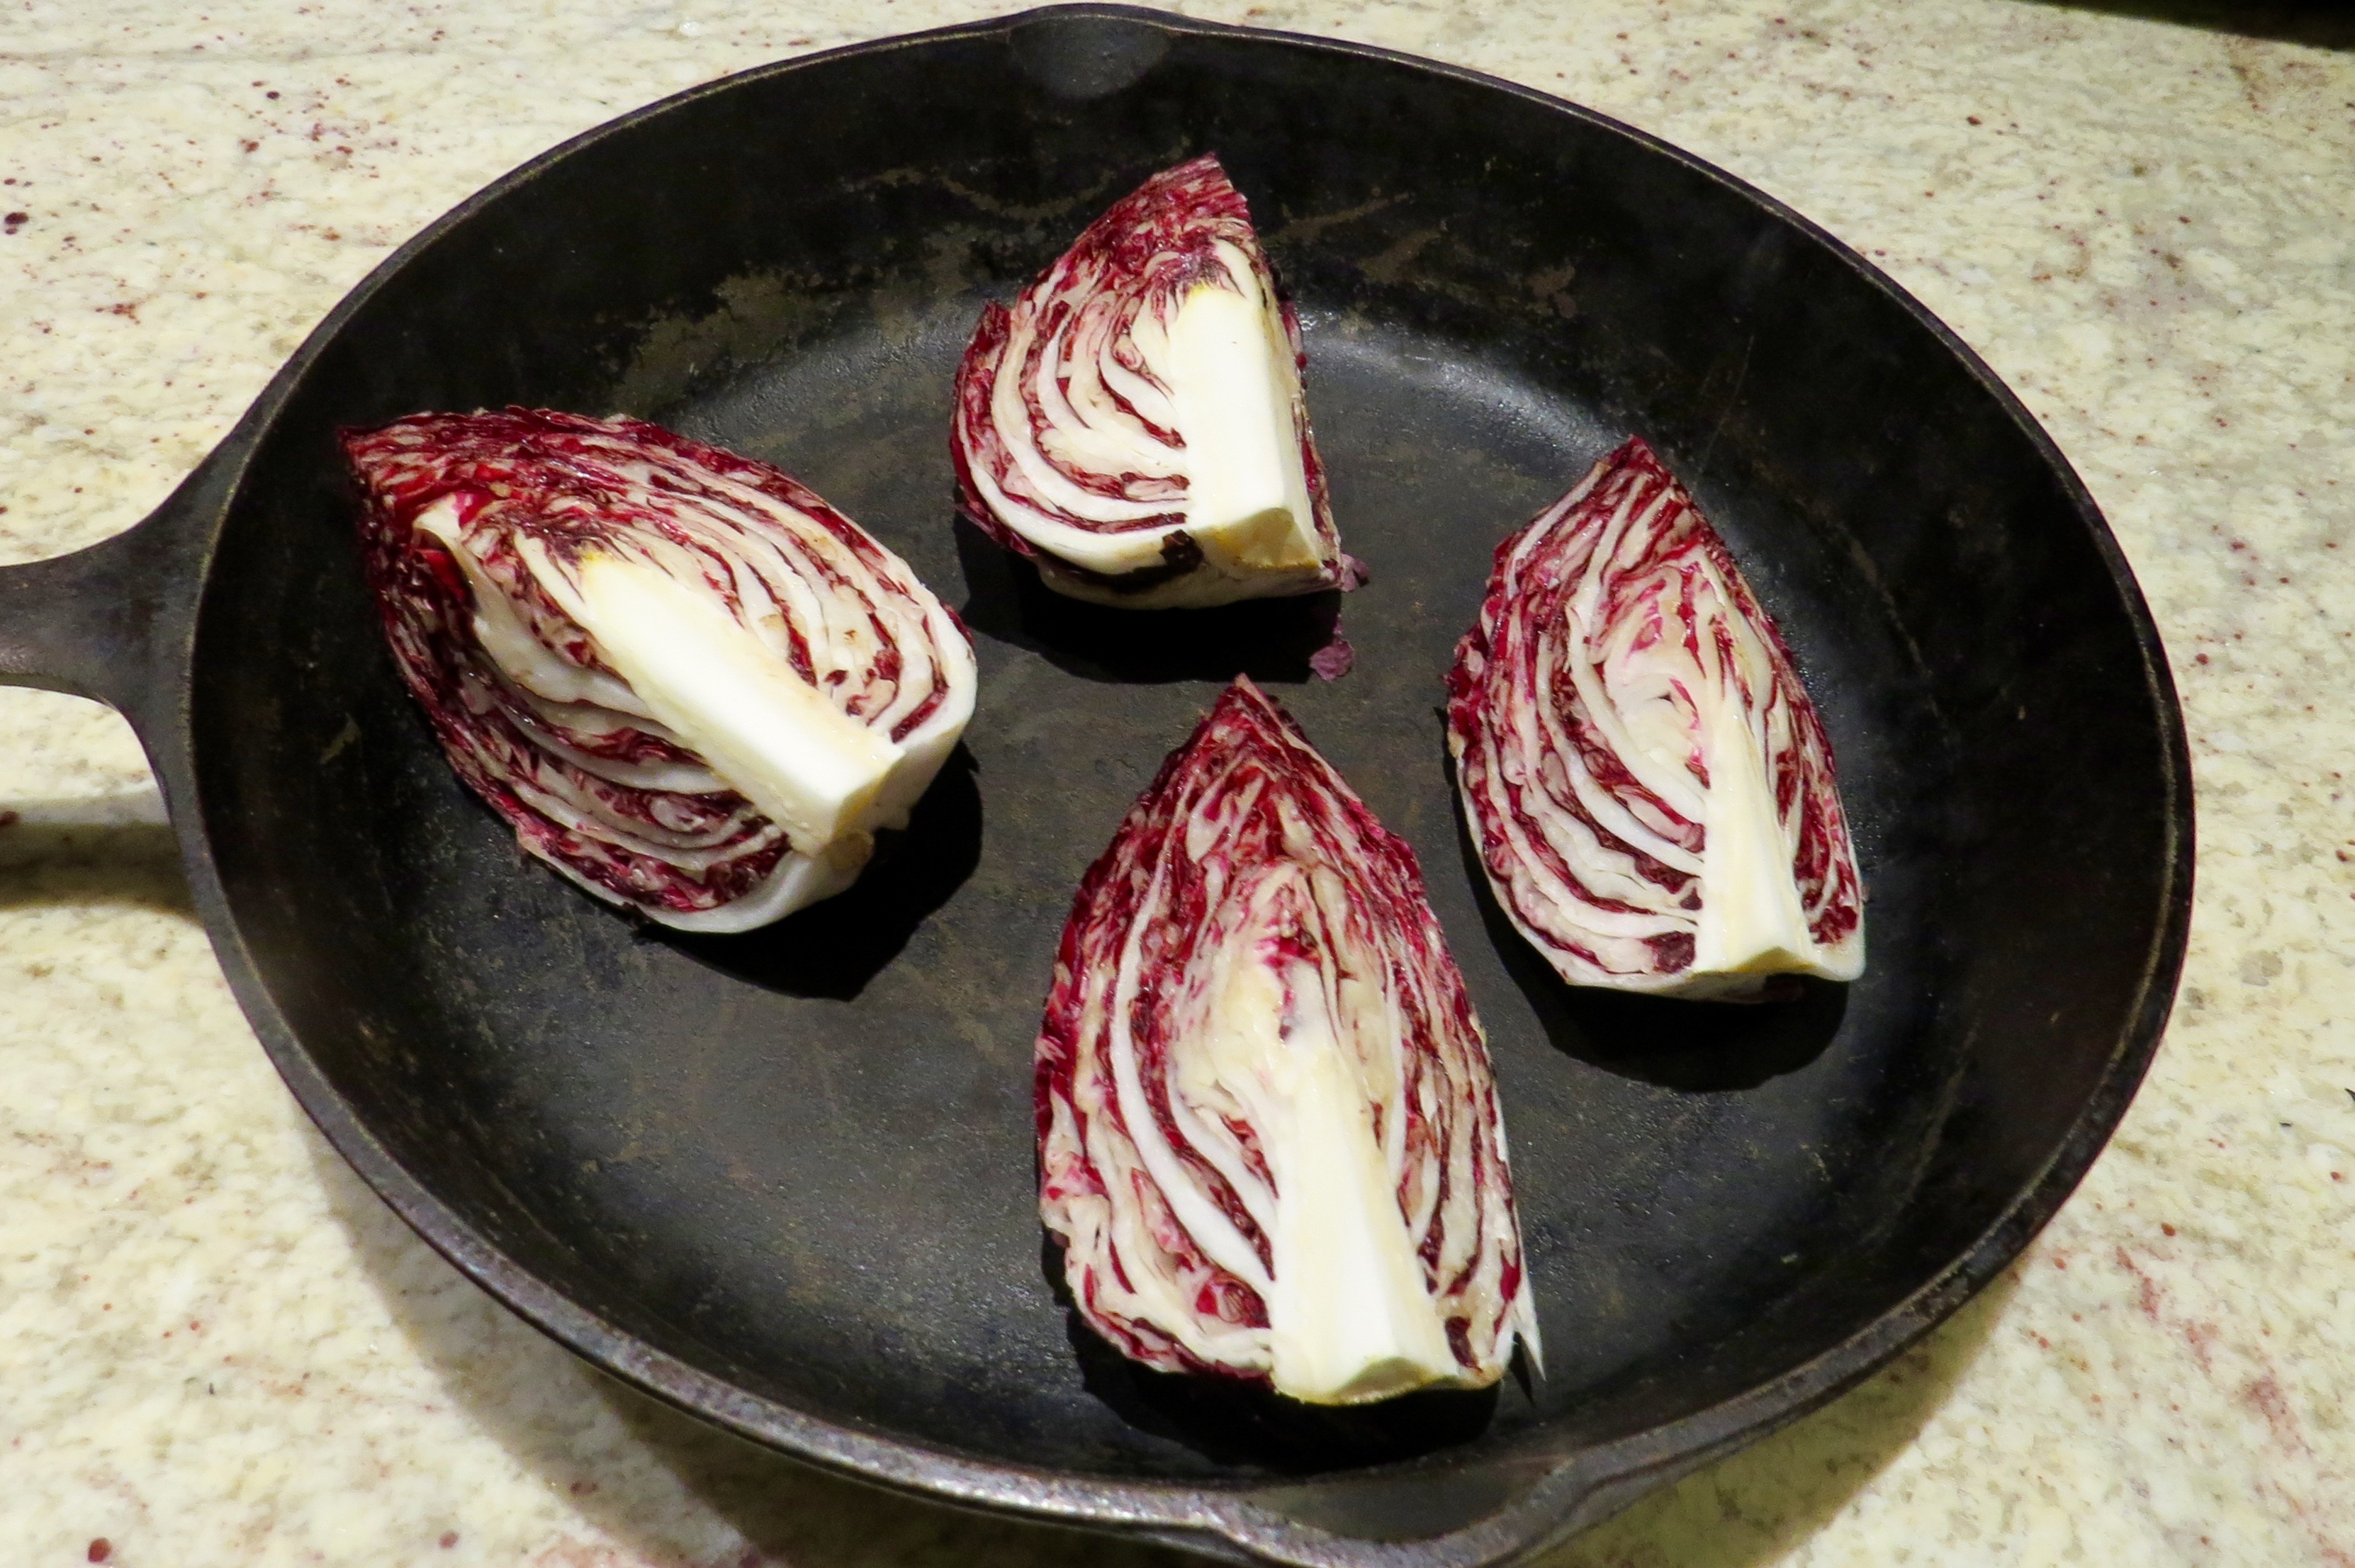 AFTER DRIZZLING EACH RADICCHIO QUARTER WITH OLIVE OIL AND POURING IN WATER, IT'S READY FOR THE OVEN.